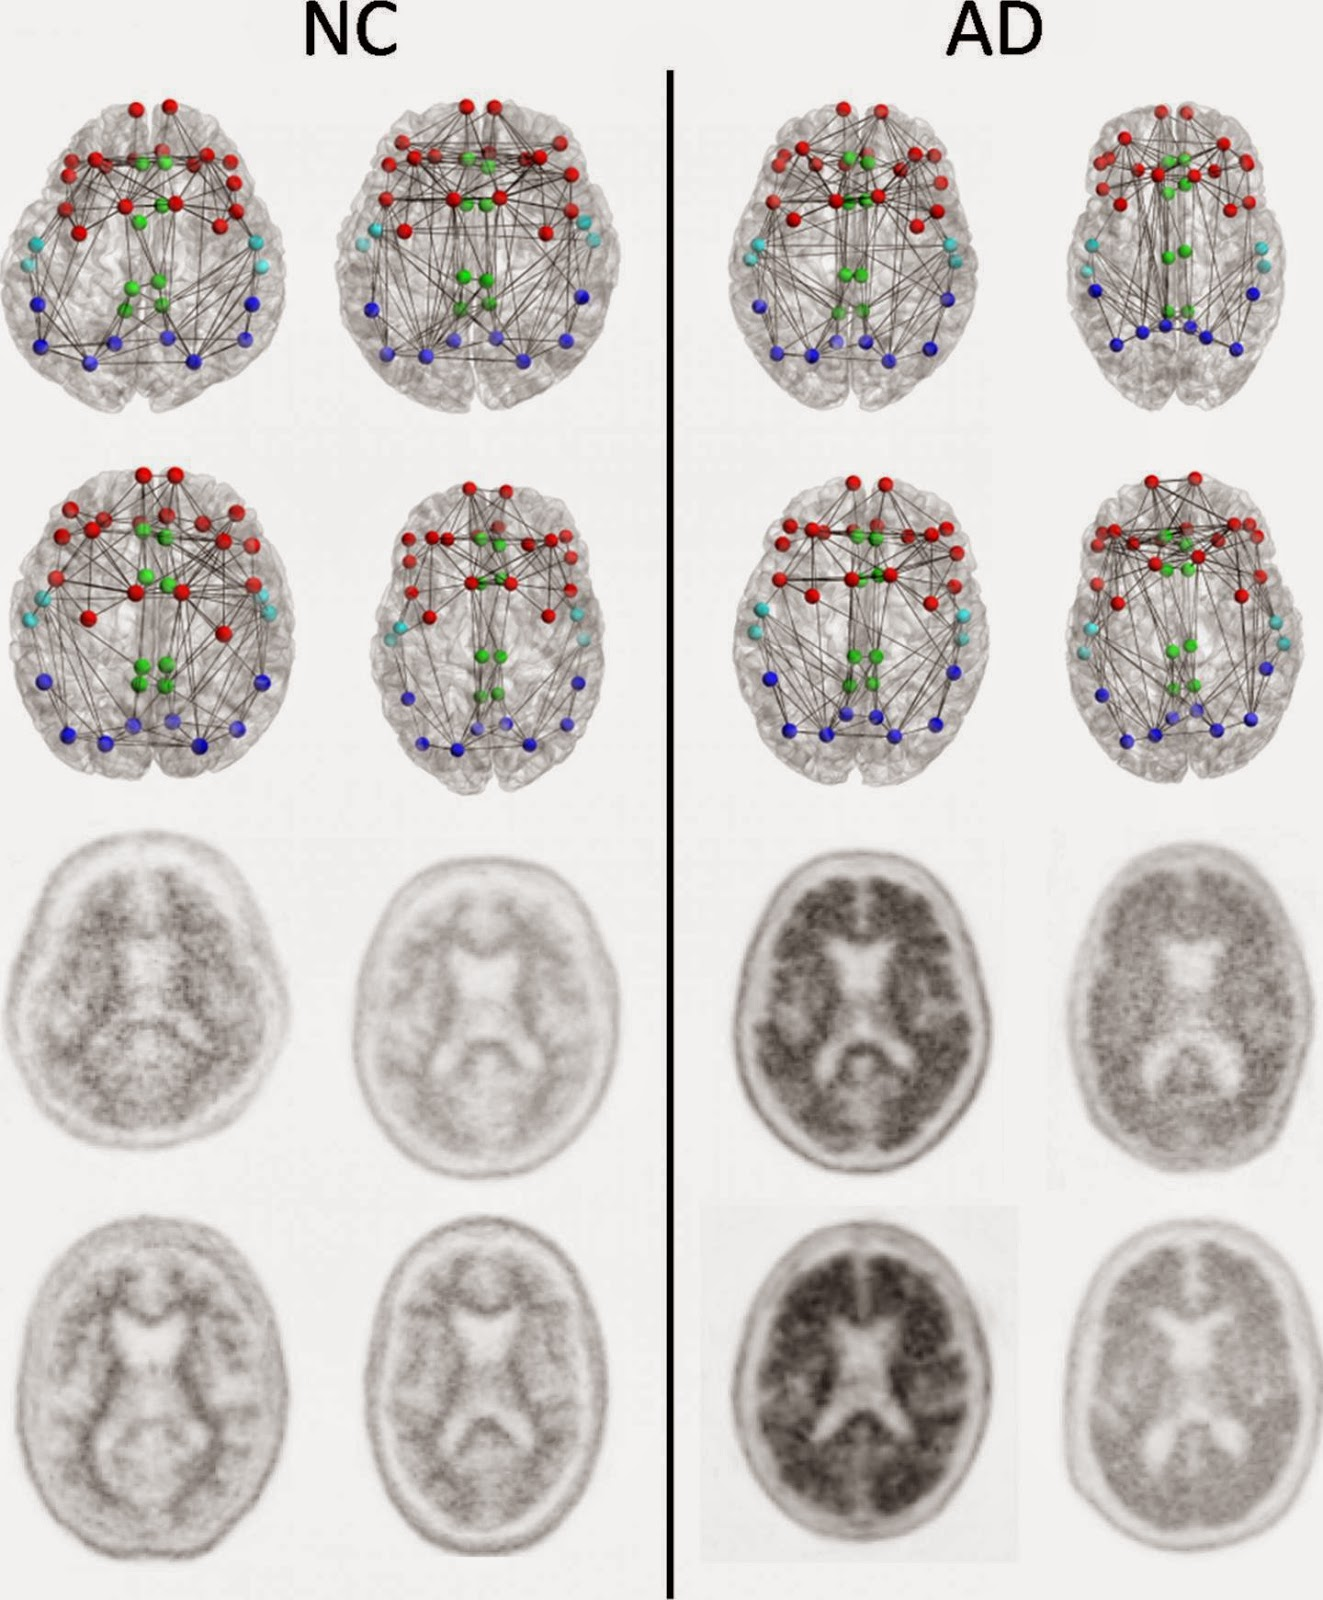 Brain Connections Breaking Down  in Early Alzheimer's